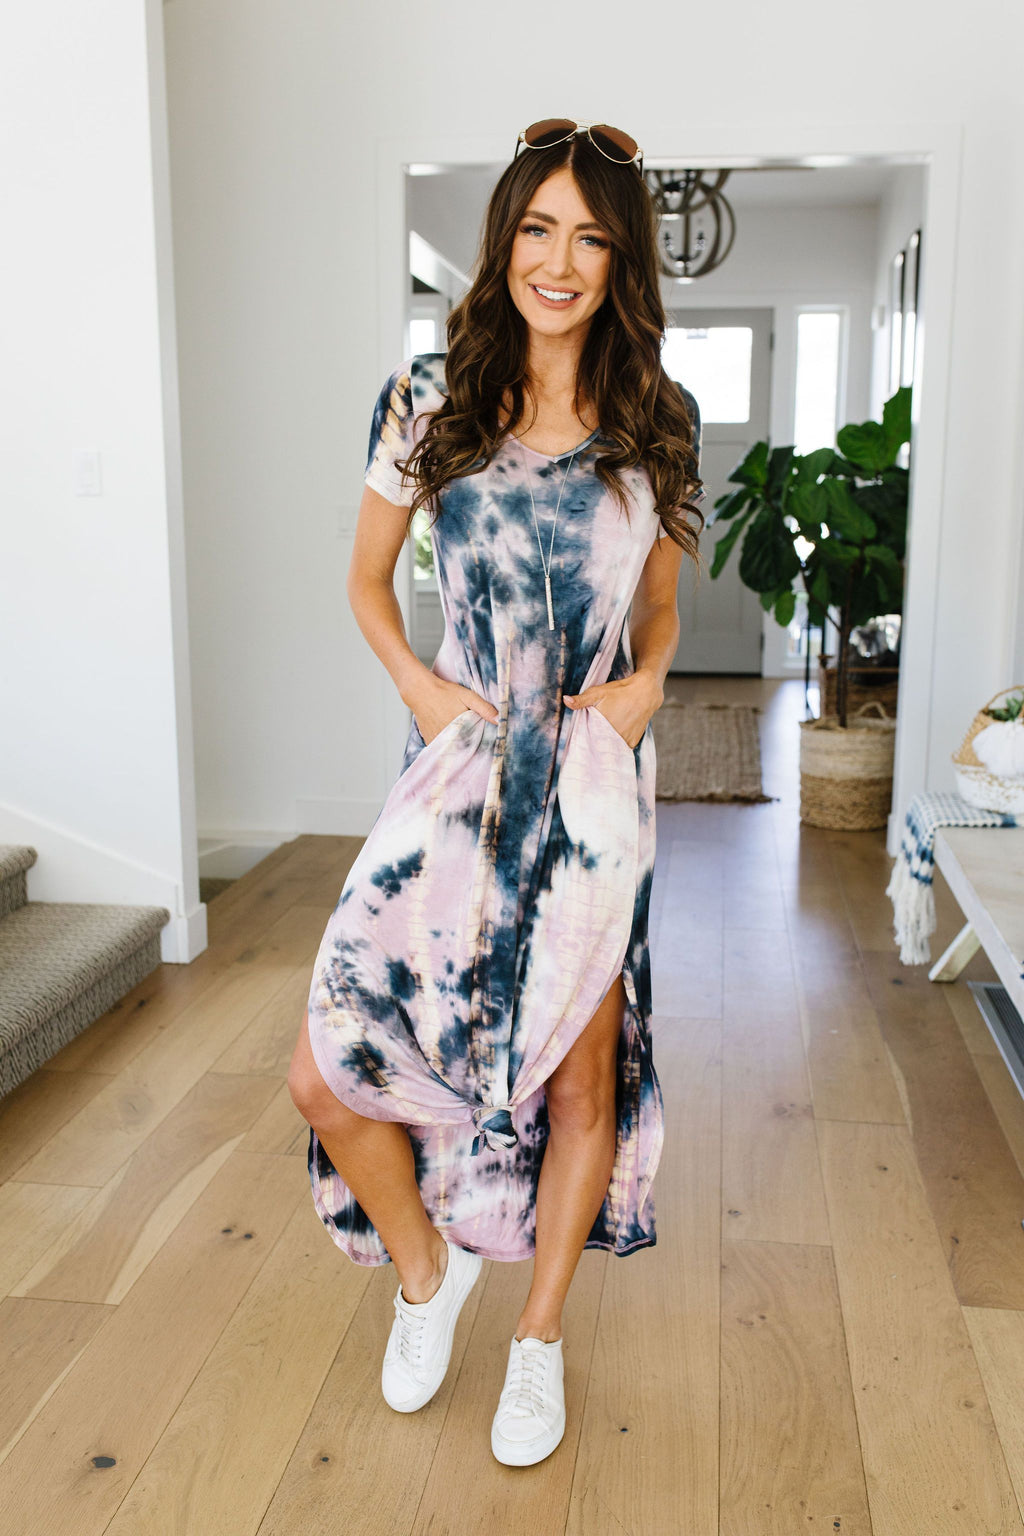 Miami Beach Tie Dye Maxi Dress-1XL, 2XL, 6-9-2020, 9-4-2020, BFCM2020, Bonus, Dresses, Group A, Group B, Group C, Group D, Group S, Group T, Large, Made in the USA, Medium, Plus, Restocks, Small, XL-Womens Artisan USA American Made Clothing Accessories